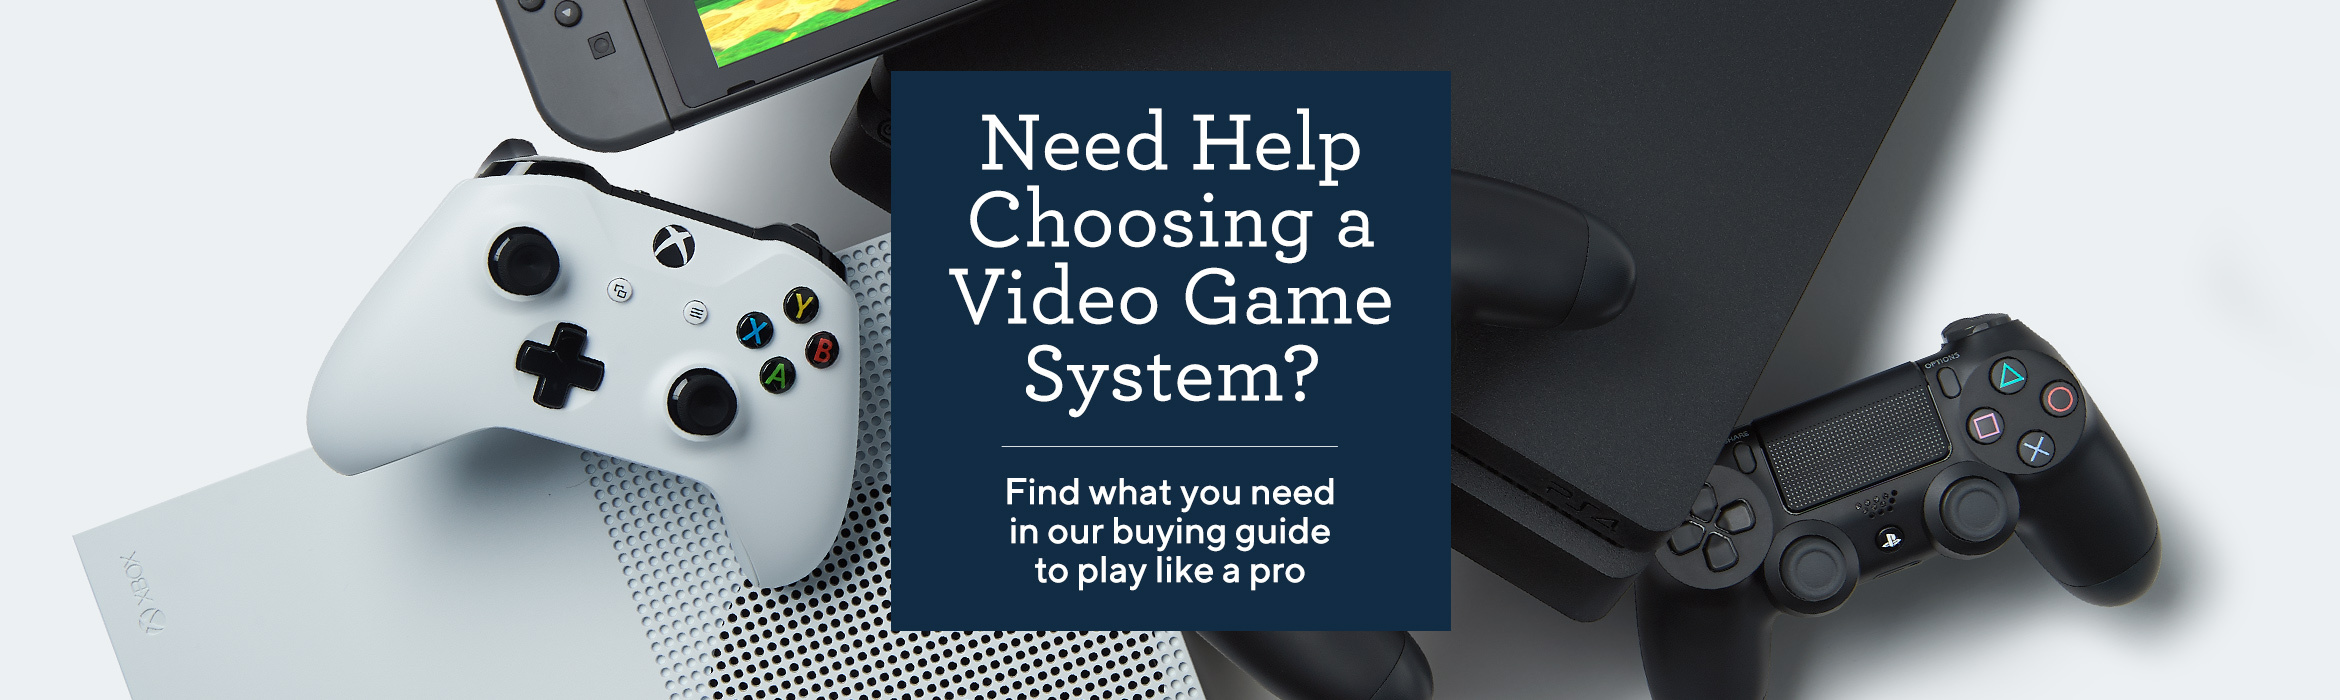 Video Games — Gaming Systems & Video Game Consoles — QVC com